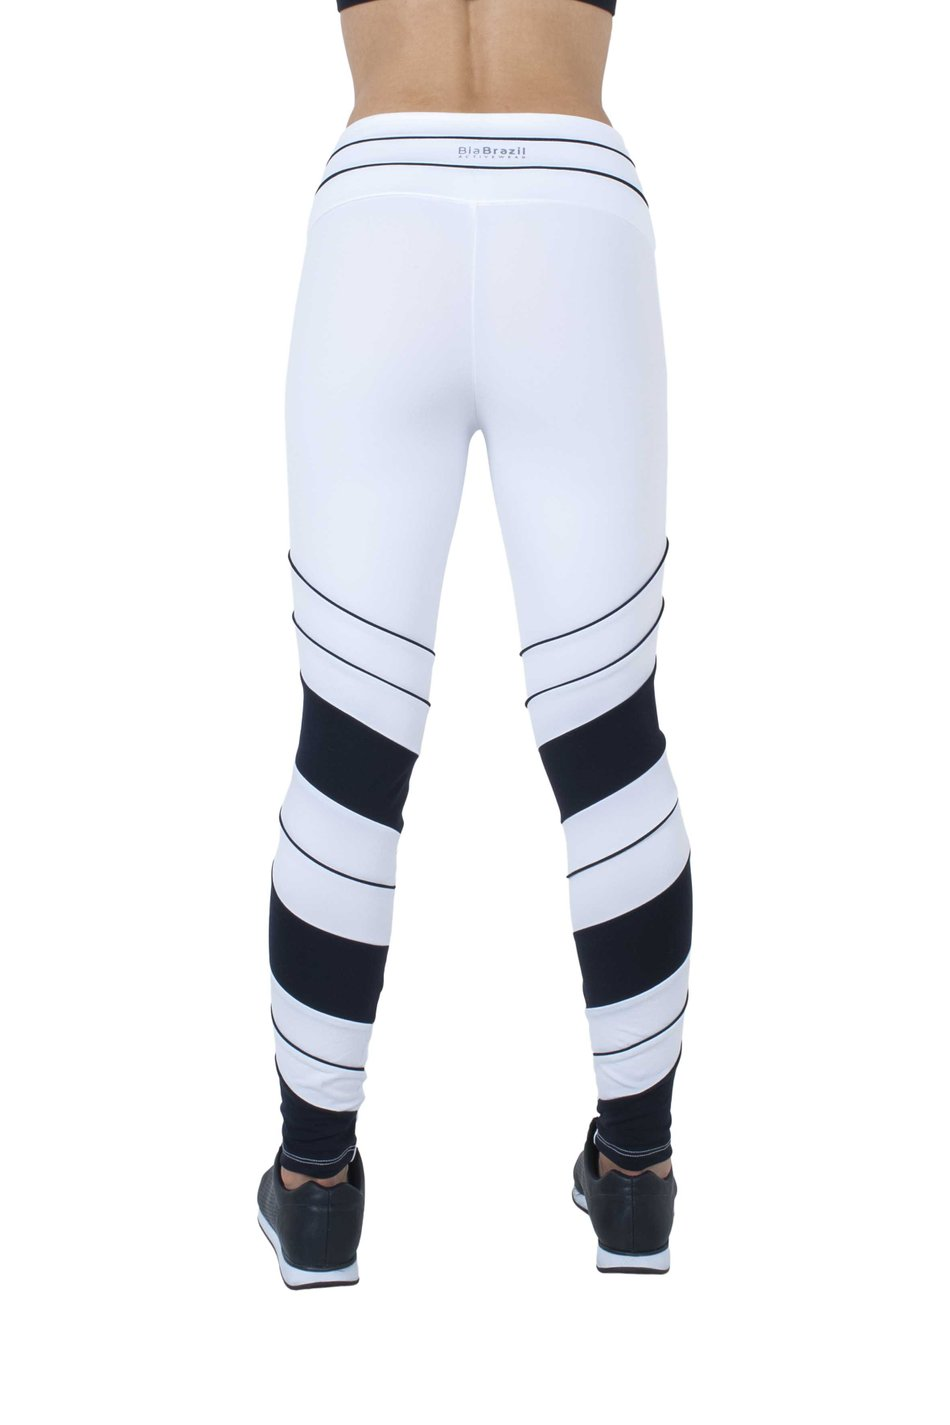 Legging Energy White and Black